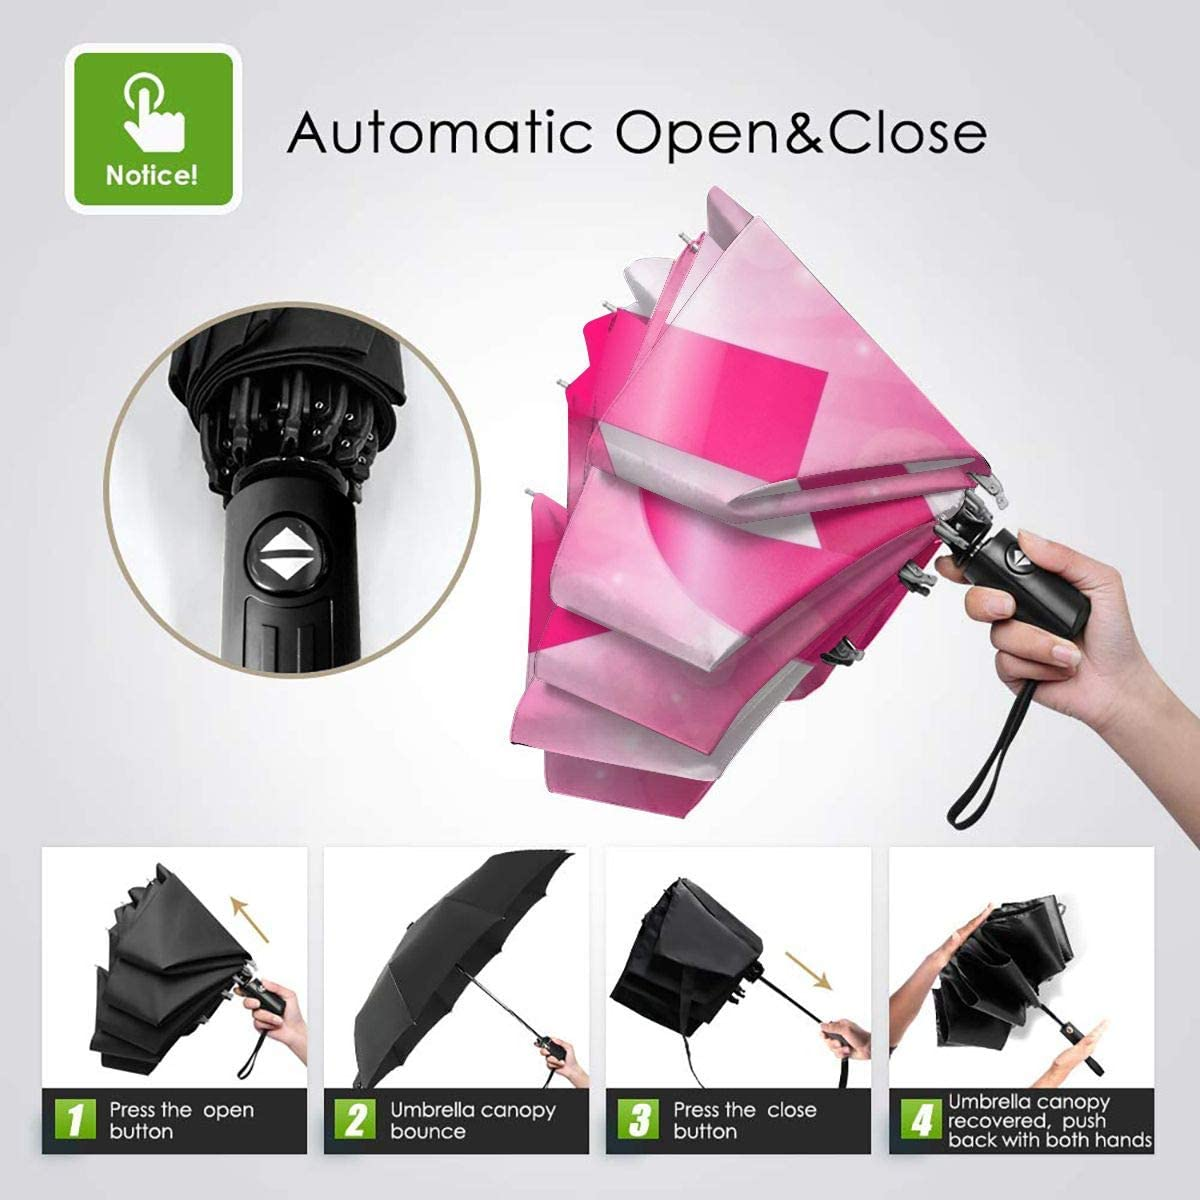 10 Ribs RLDSESS Pink Travel Folding Umbrella Ladies 42 Inches Rainproof Men Automatic Opening and Closing,Pink Butterfly with Ribbon for Breast Cancer,Windproof